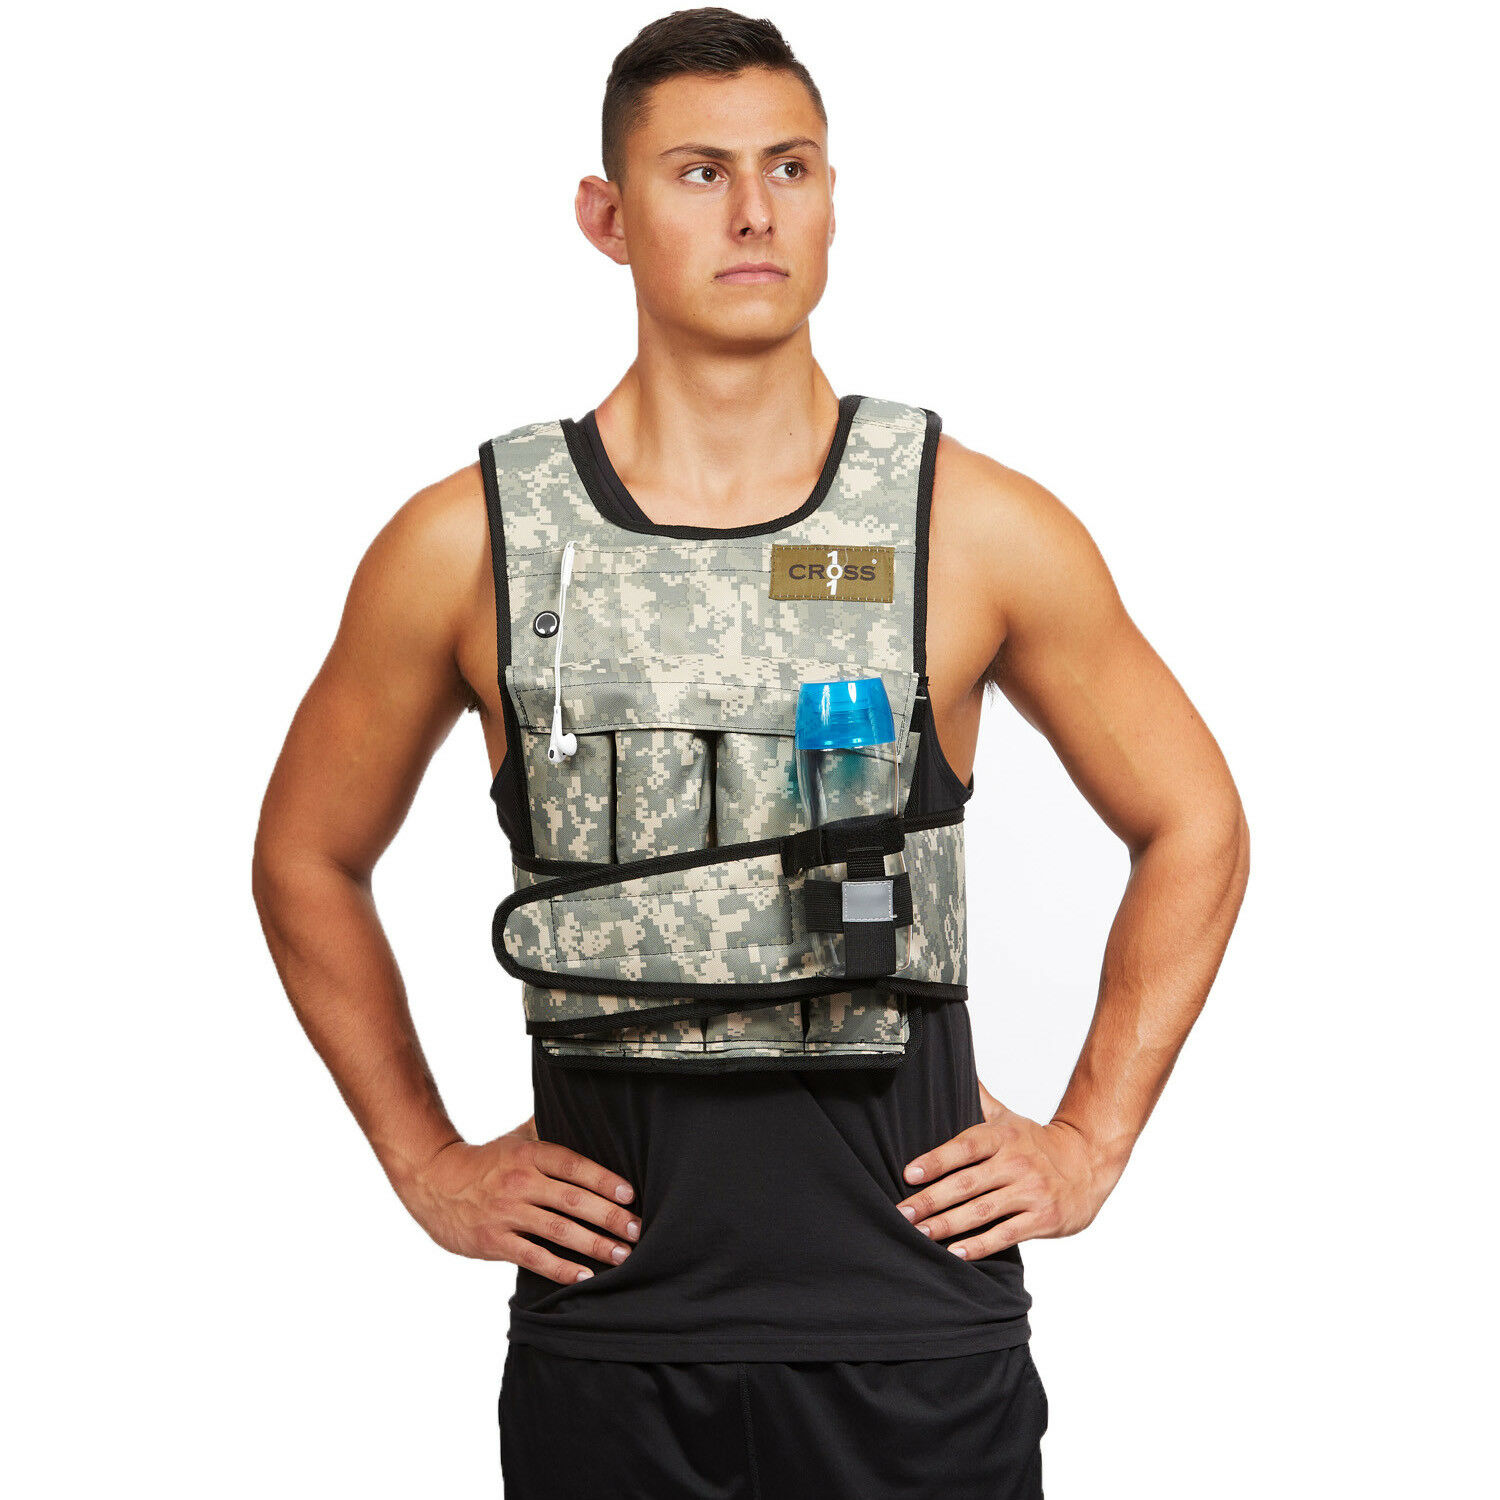 CROSS101 Camouflage Adjustable Weighted Weight Vest  with Shoulder Pads  comfortably